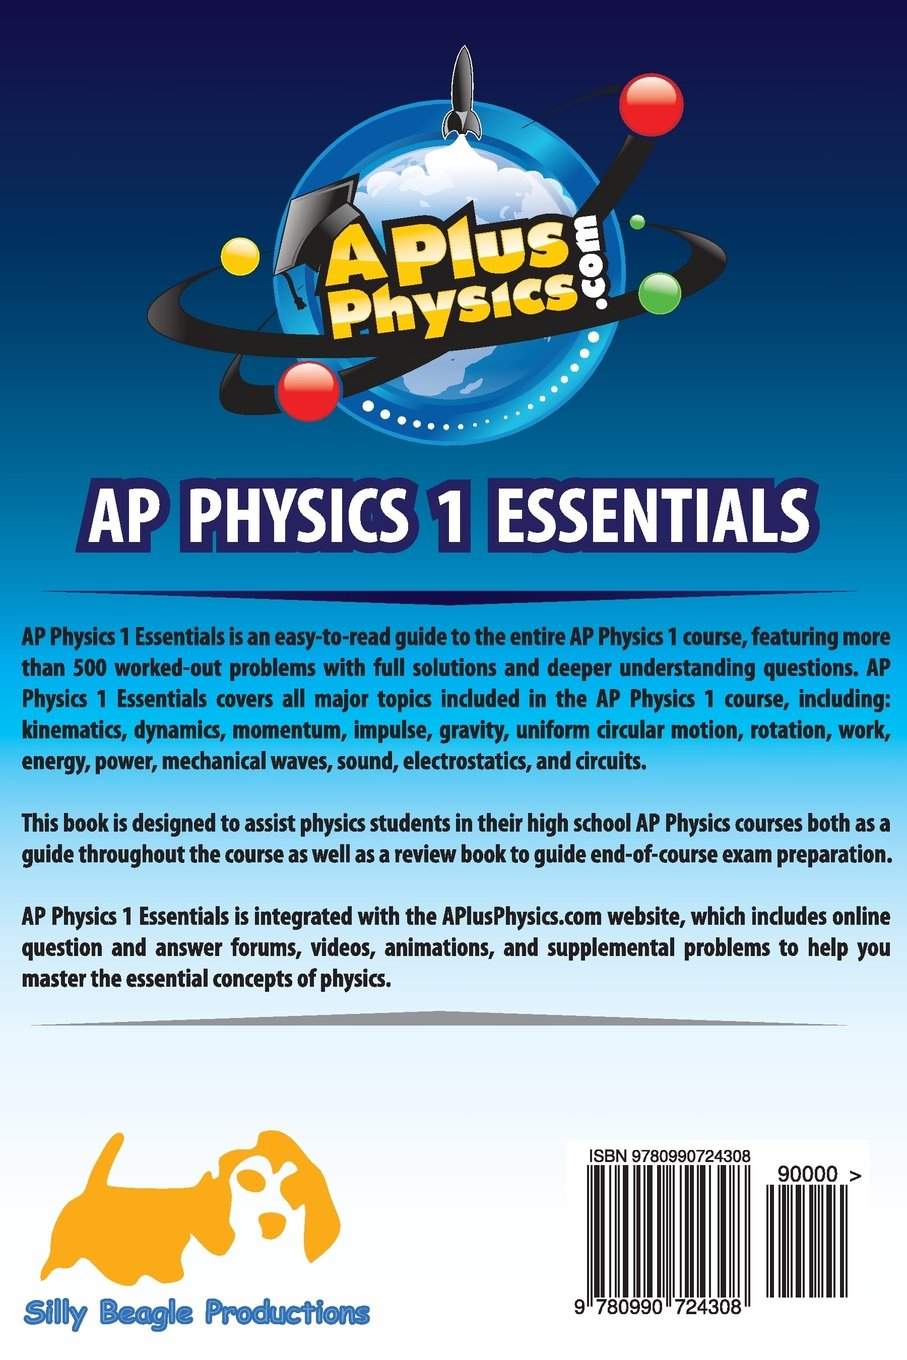 ap physics 1 essentials an aplusphysics guide dan fullerton ap physics 1 essentials an aplusphysics guide dan fullerton 9780990724308 books ca